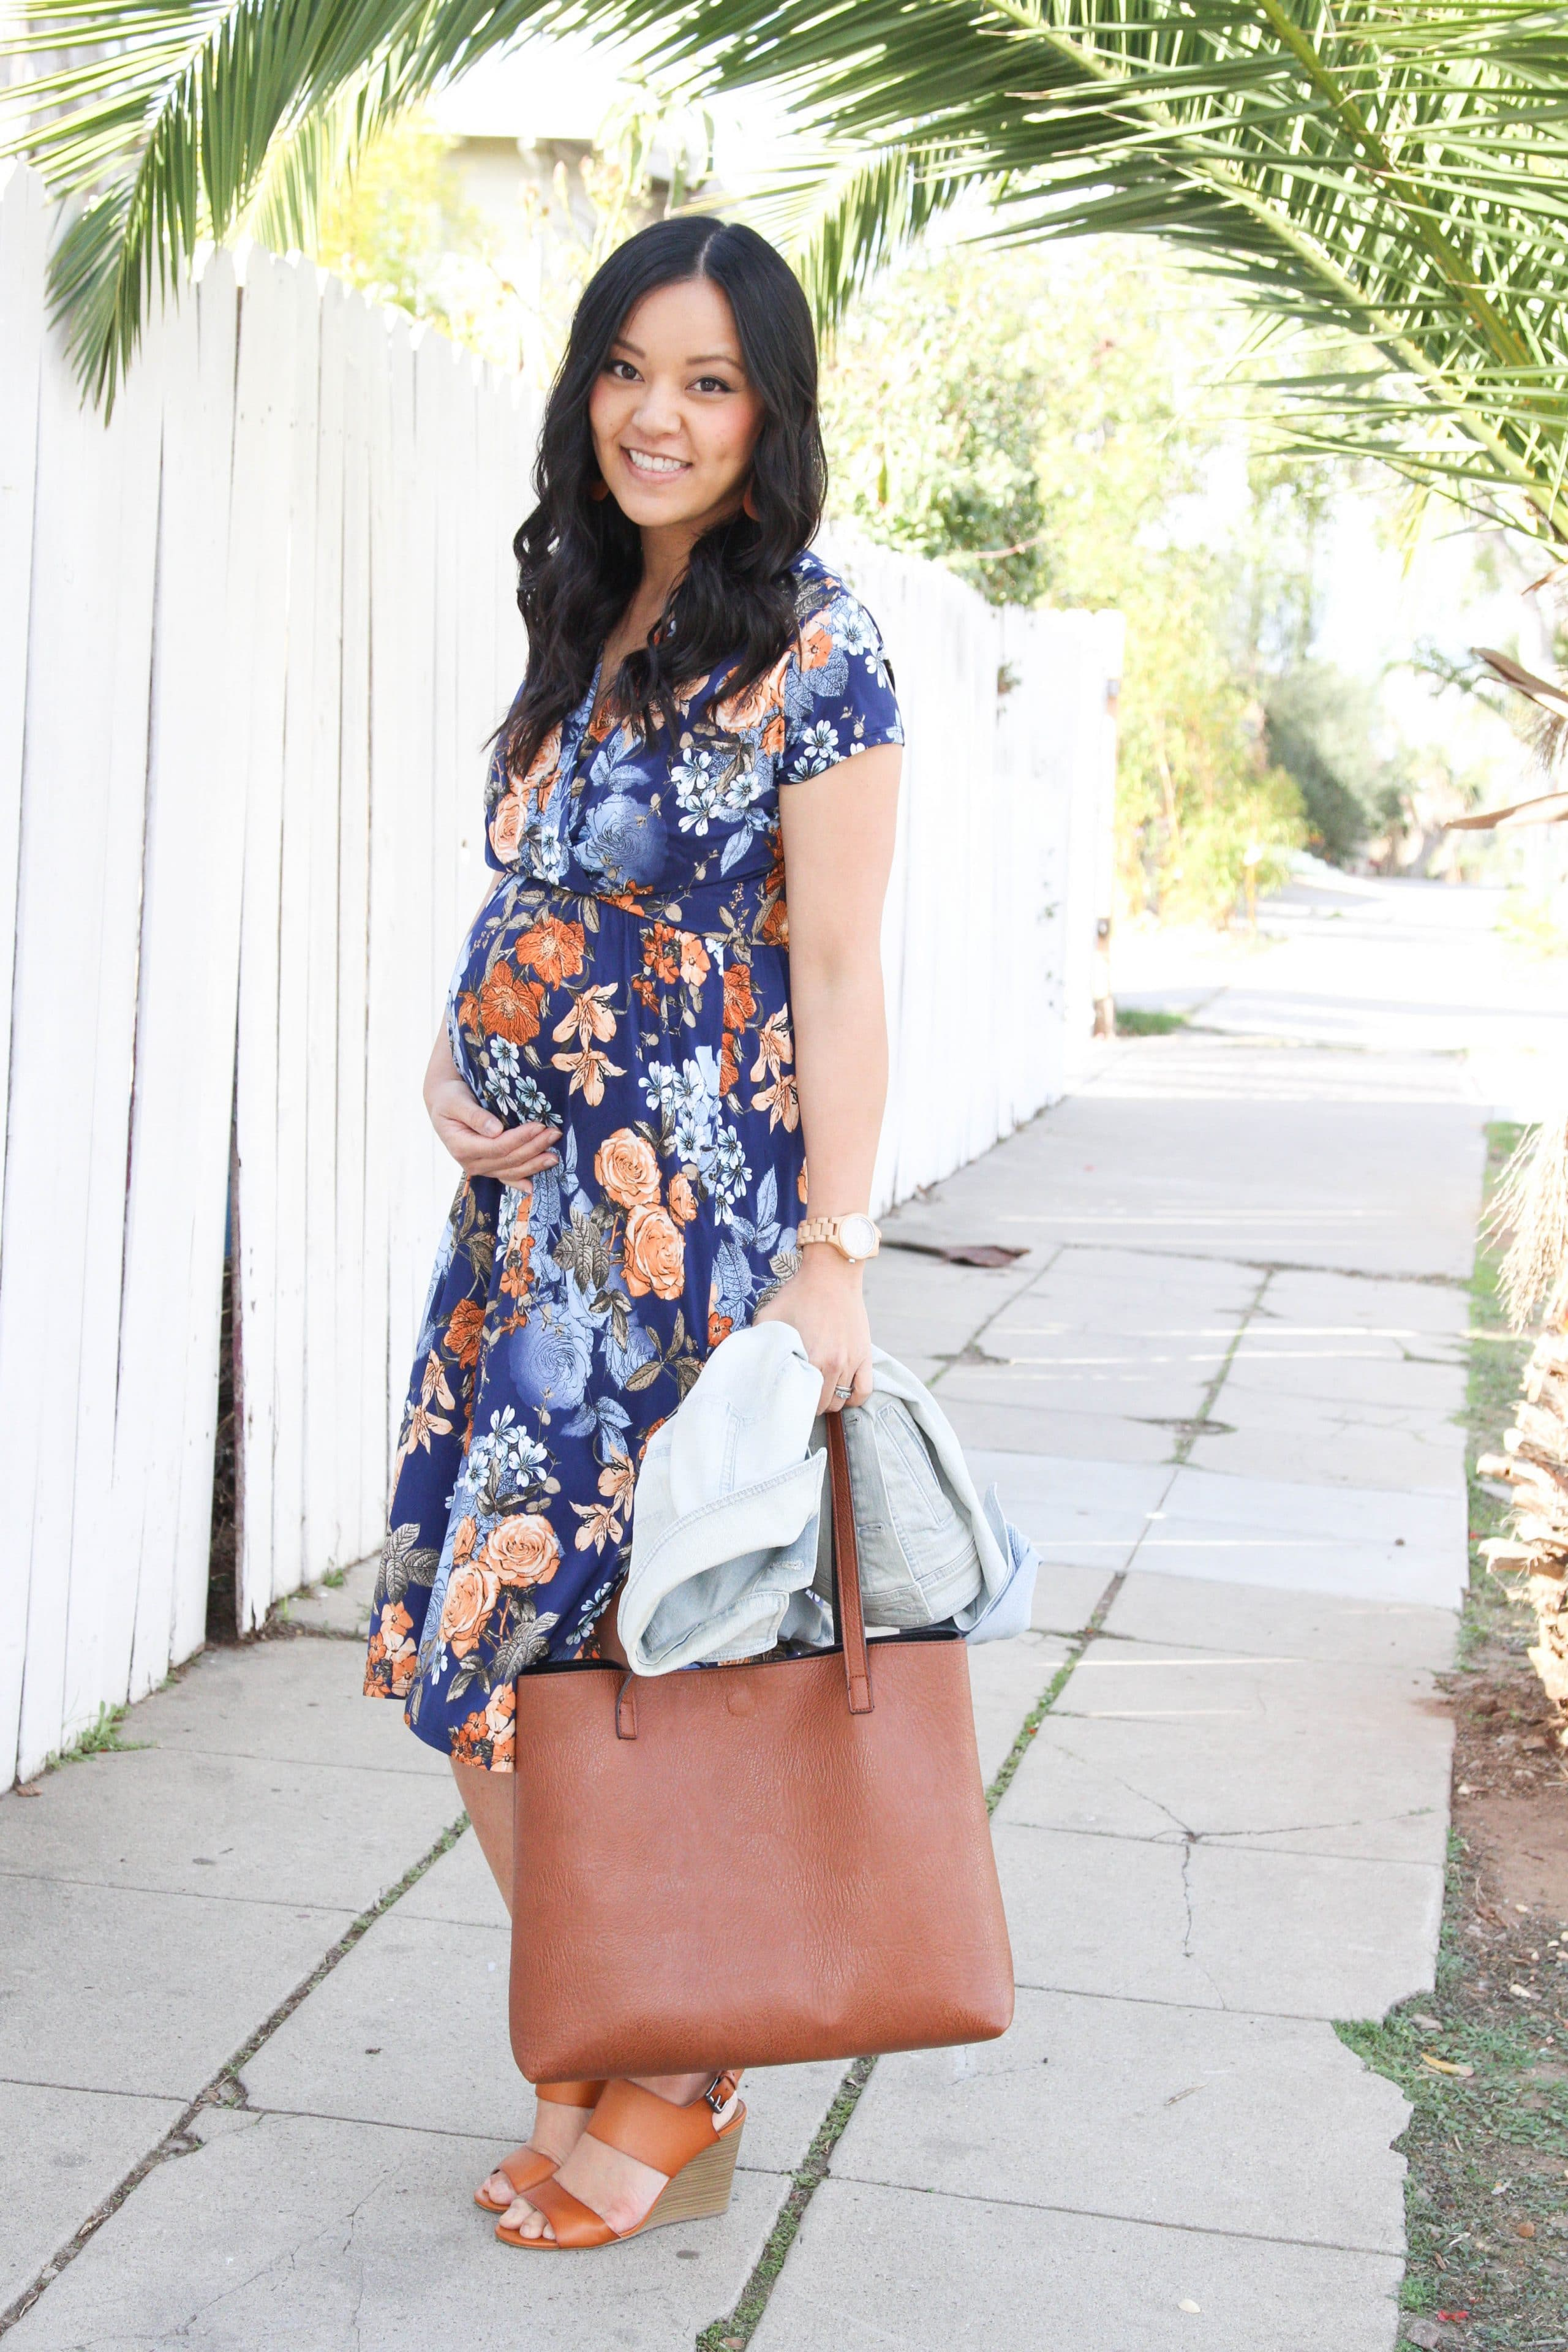 Floral Midi Dress + Cognac Tote + Cognac Heels + Jord Watch